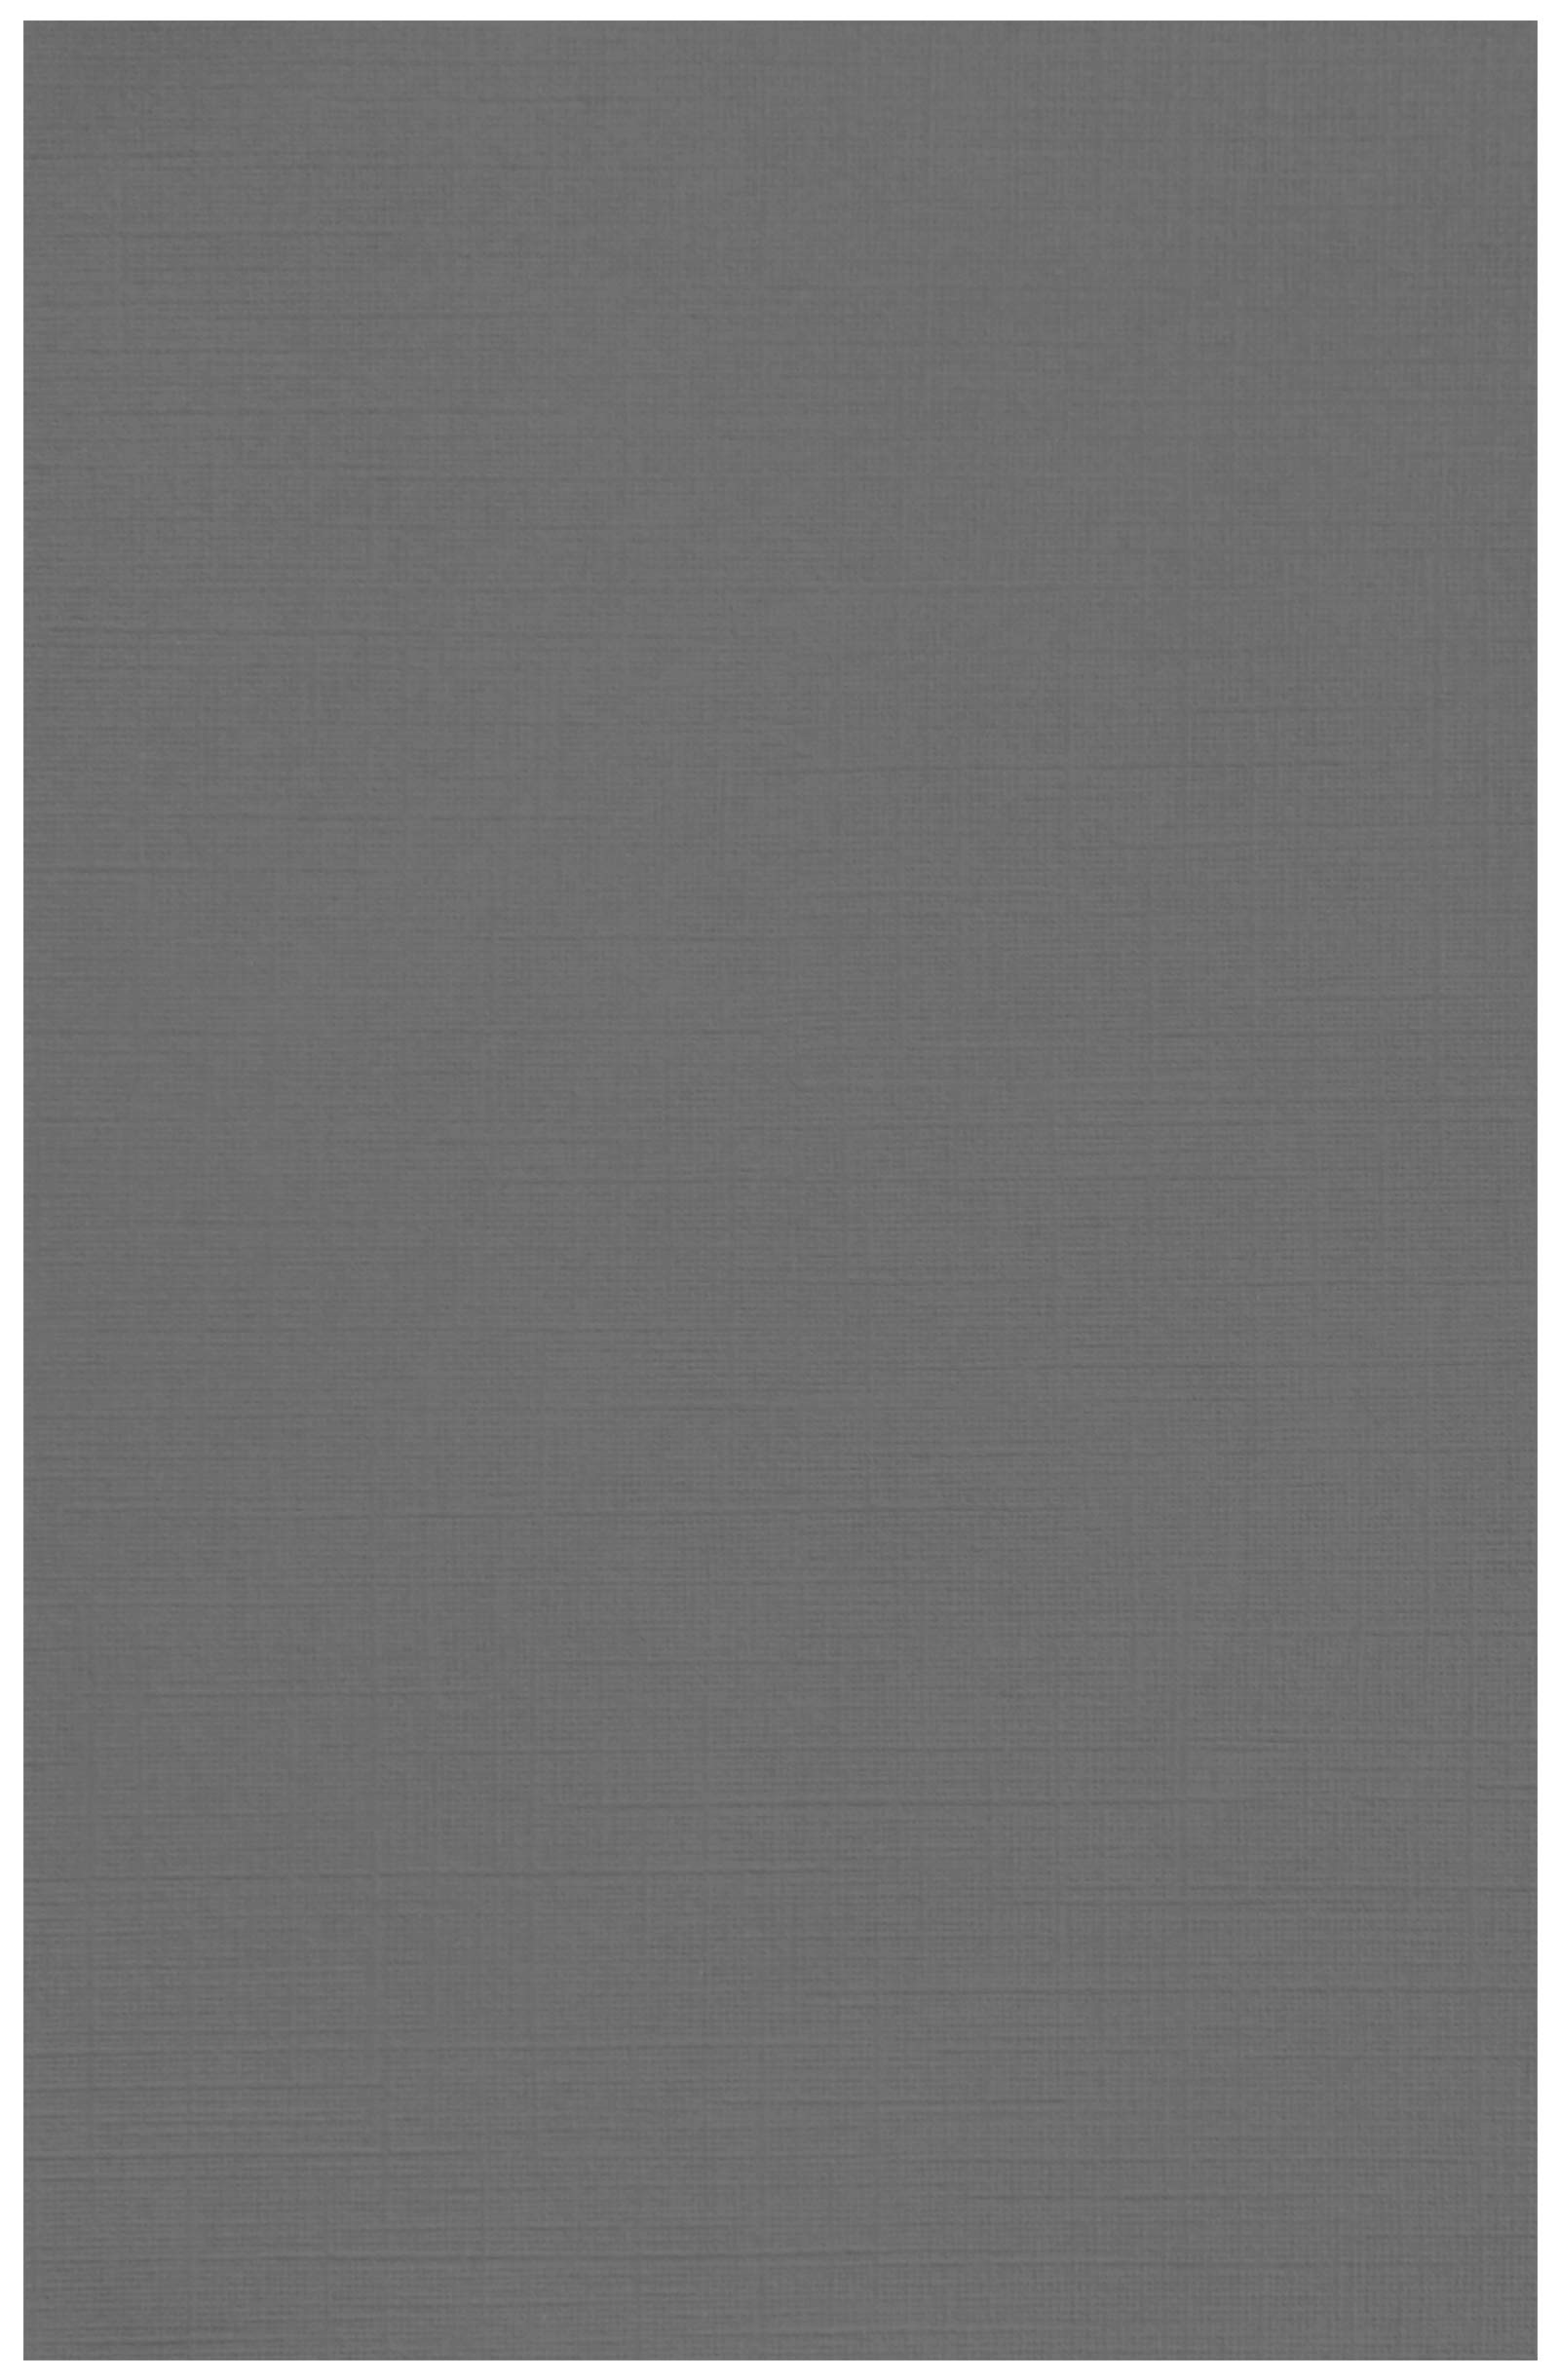 11 x 17 Cardstock - Sterling Gray Linen (50 Qty.) | Perfect for Crafting, Invitations, Scrapbooking, Art Projects, 11x17 Photos, Brochures | Printable | 100lb. Cover Weight | 1117-C-GRLI-50 by LUXPaper